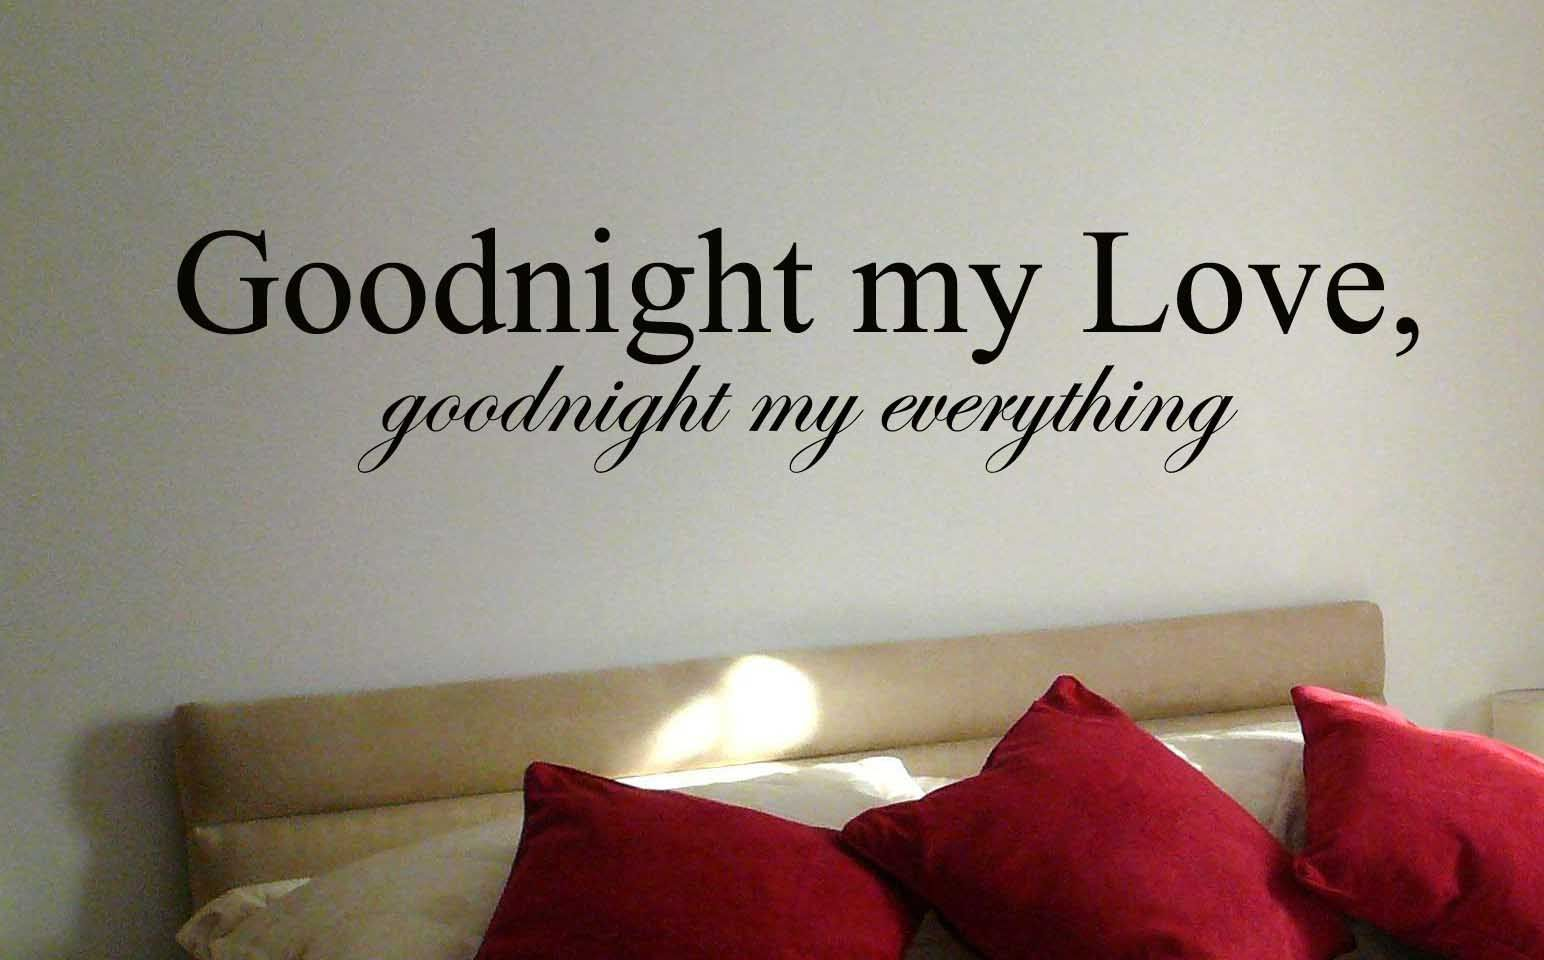 Dirty Goodnight Quotes For Him Quotesgram By At Quotesgram Quotes